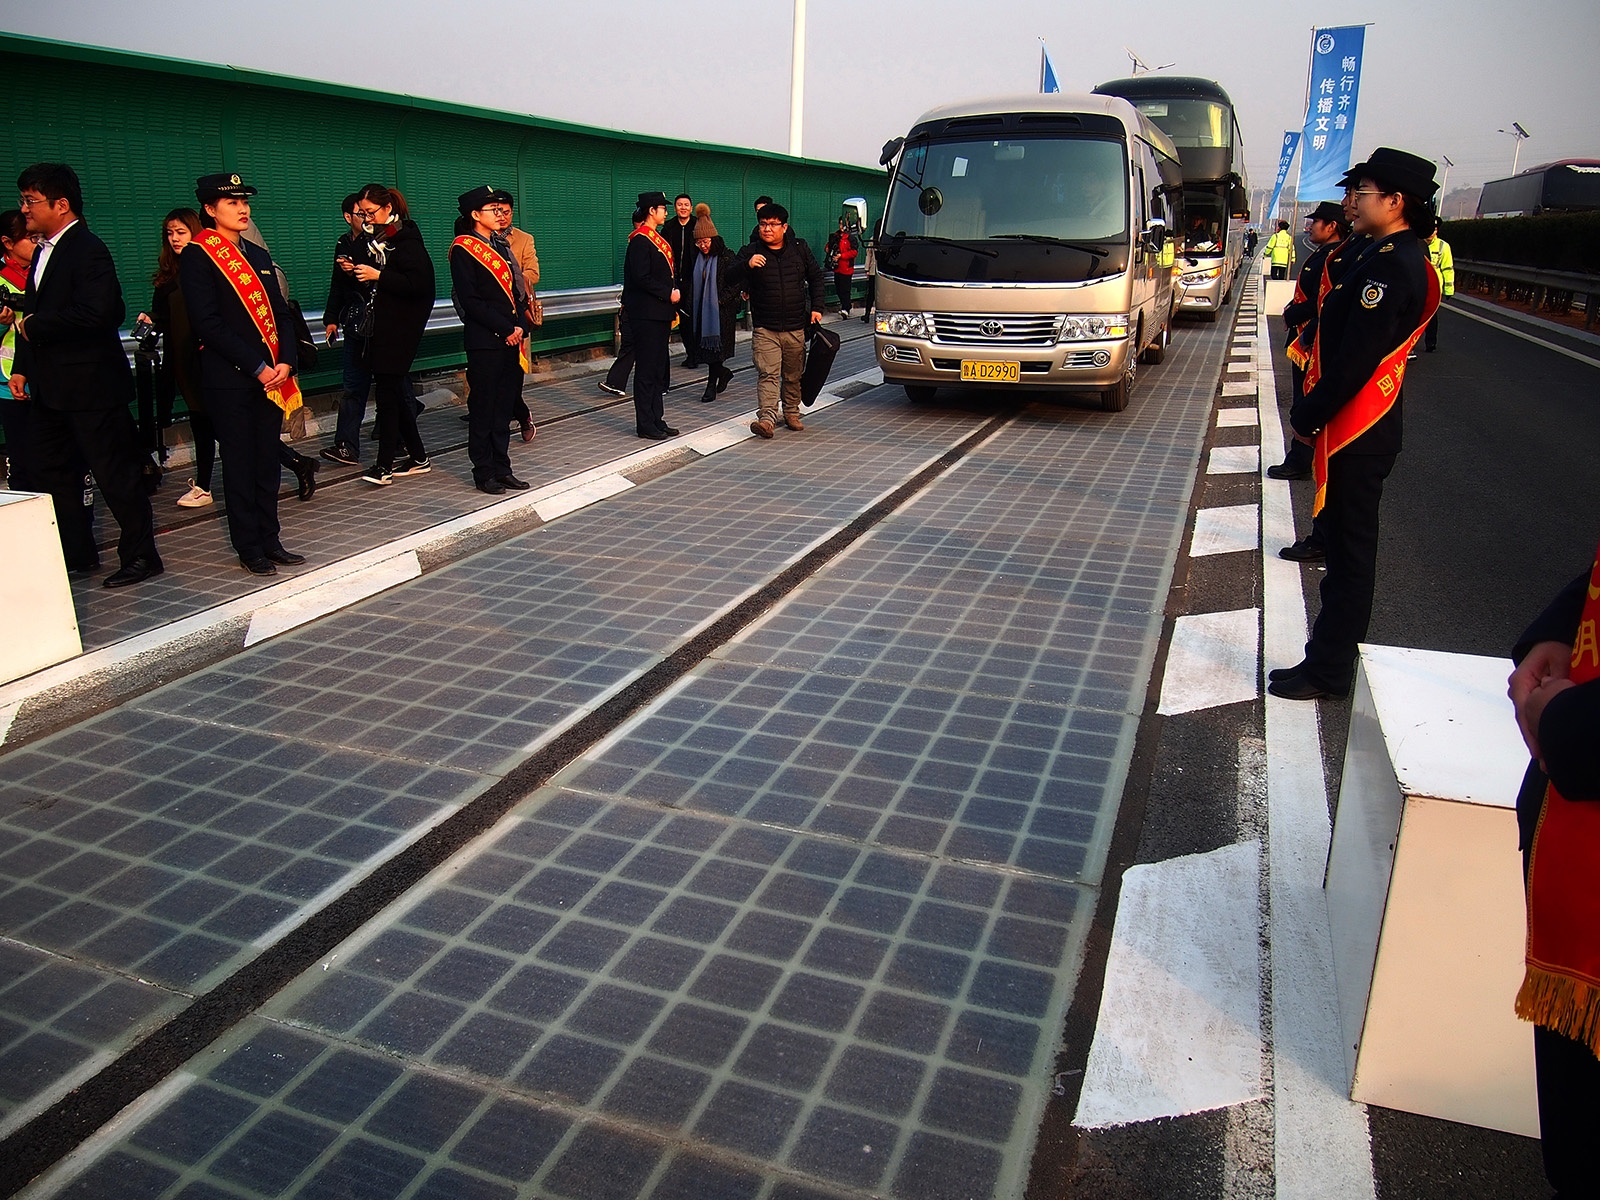 Solar Roadways could pave a sustaianble future